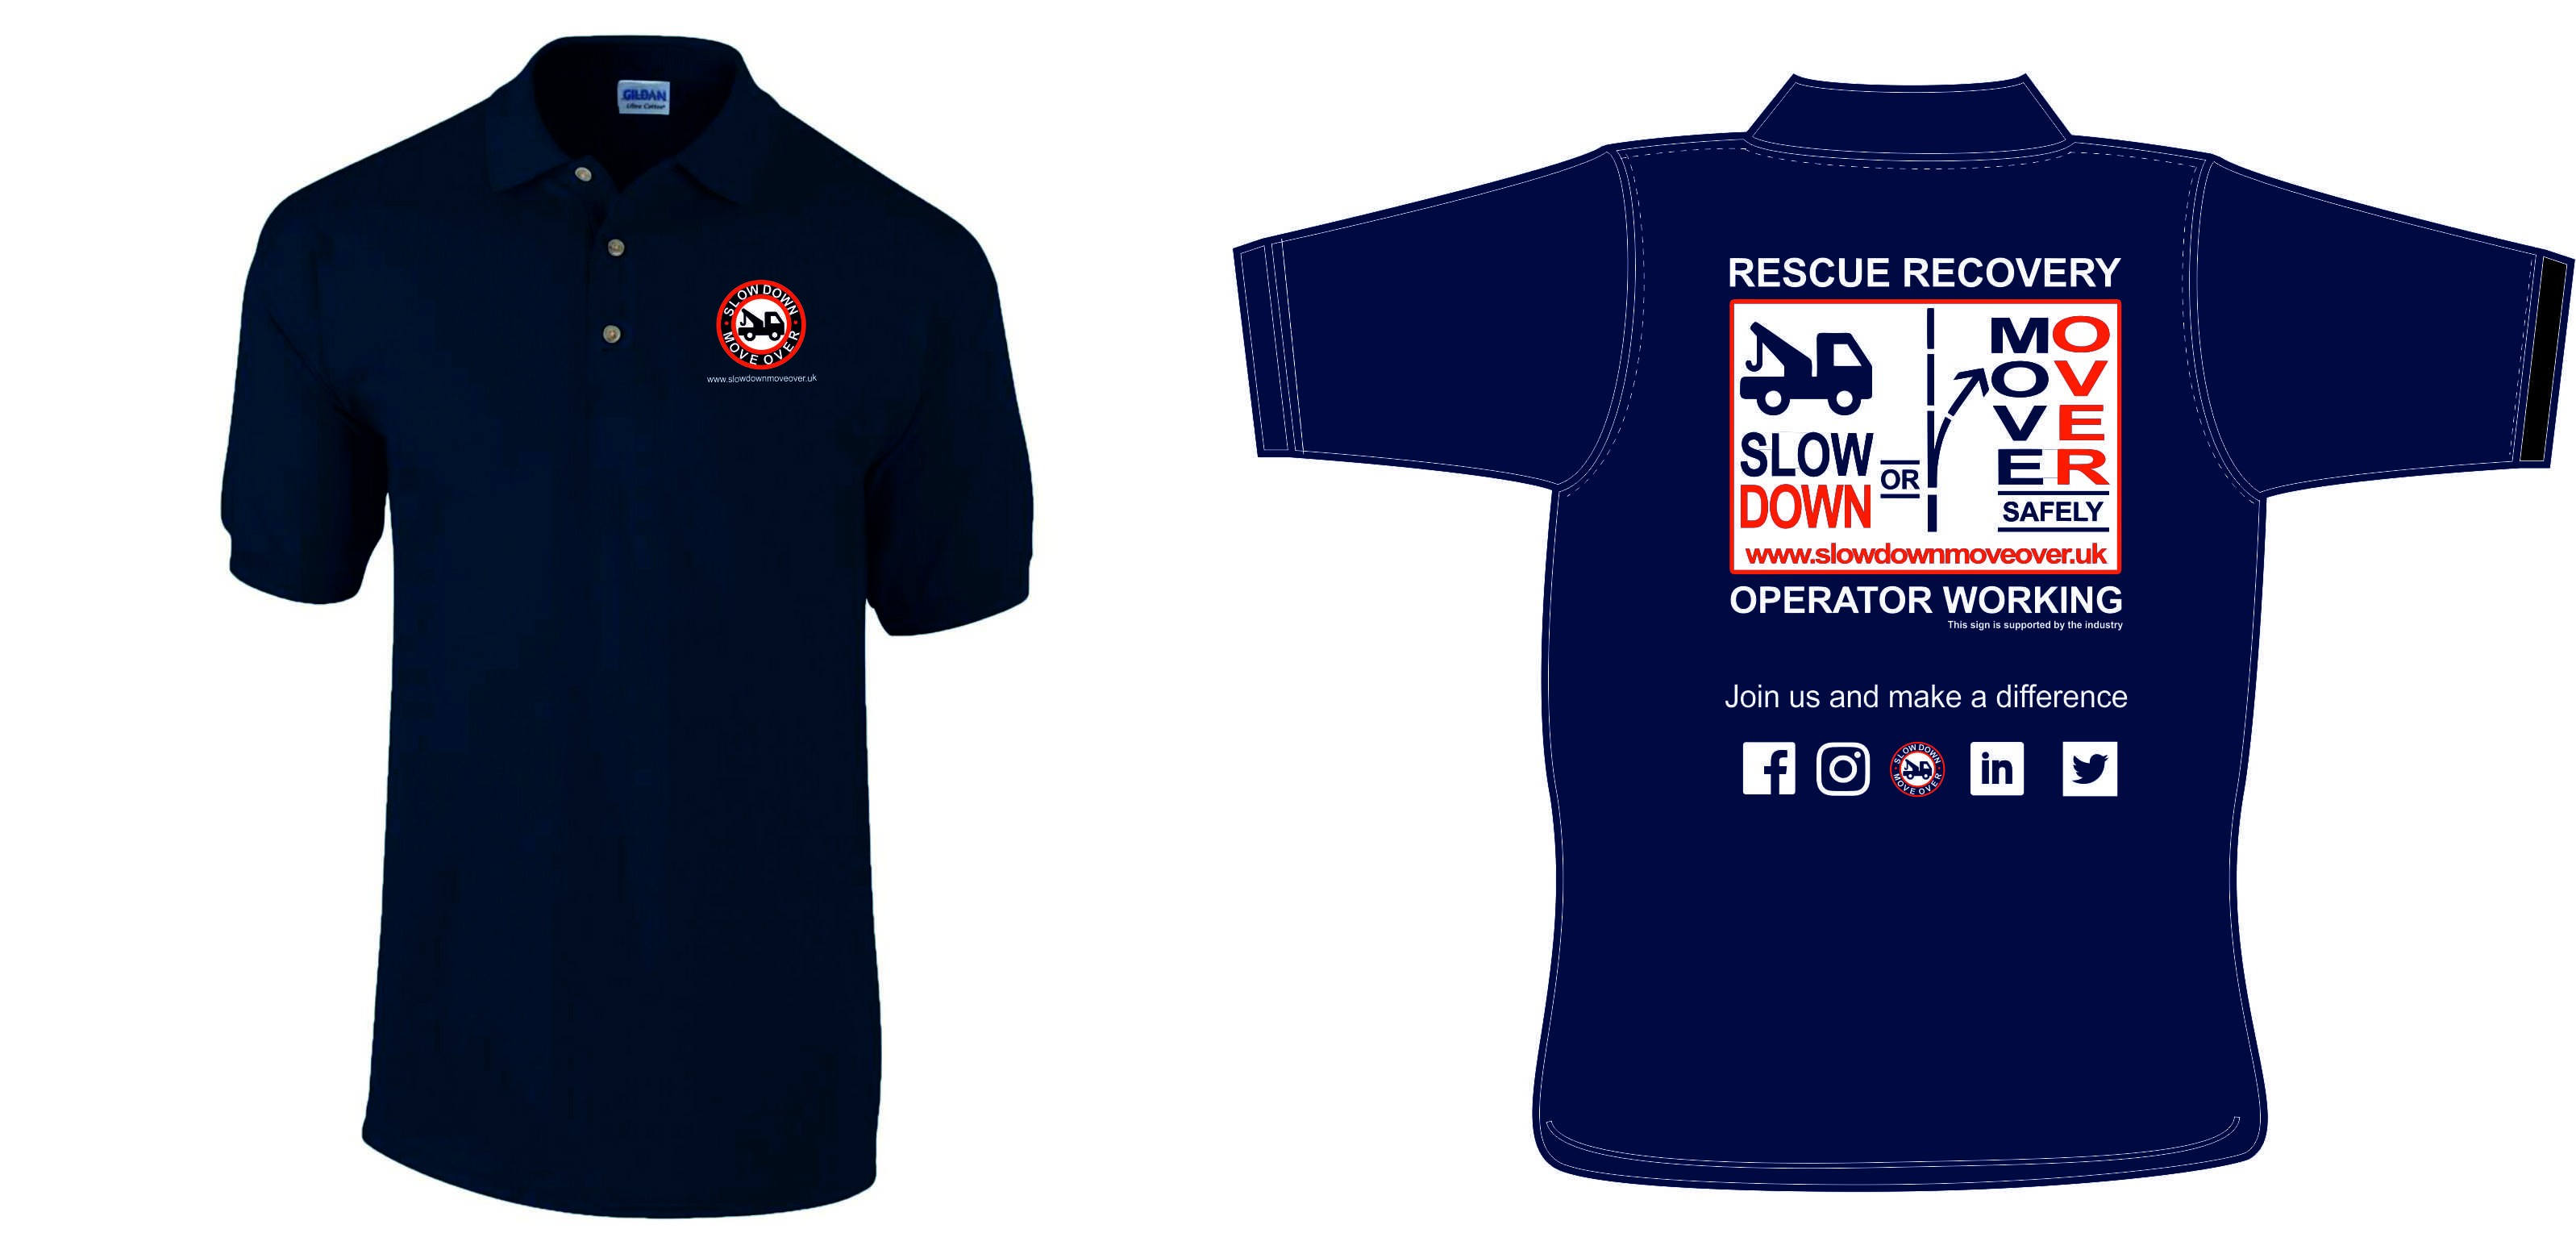 Slow Down Move Over Rescue Recovery Adult Polo Shirt